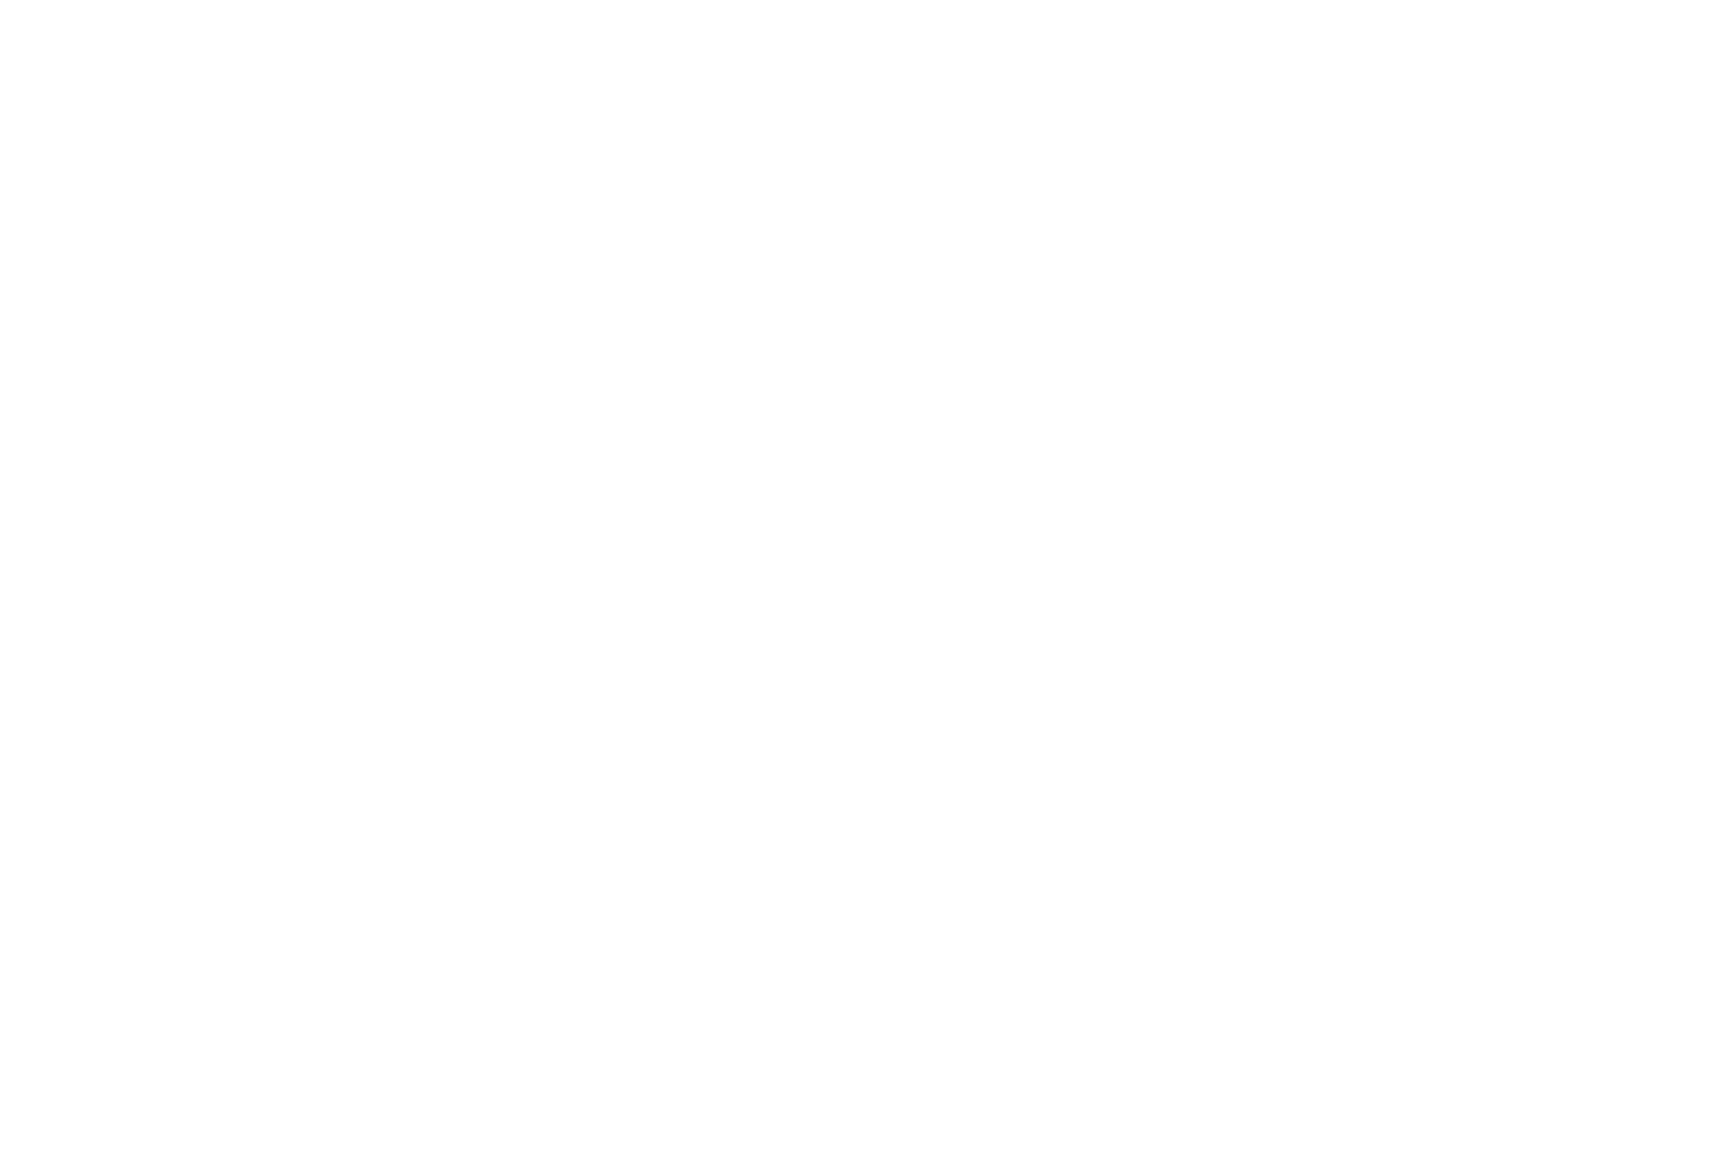 OFFICIAL SELECTION - Asian Film Festival of Barcelona - 2019 (1).png